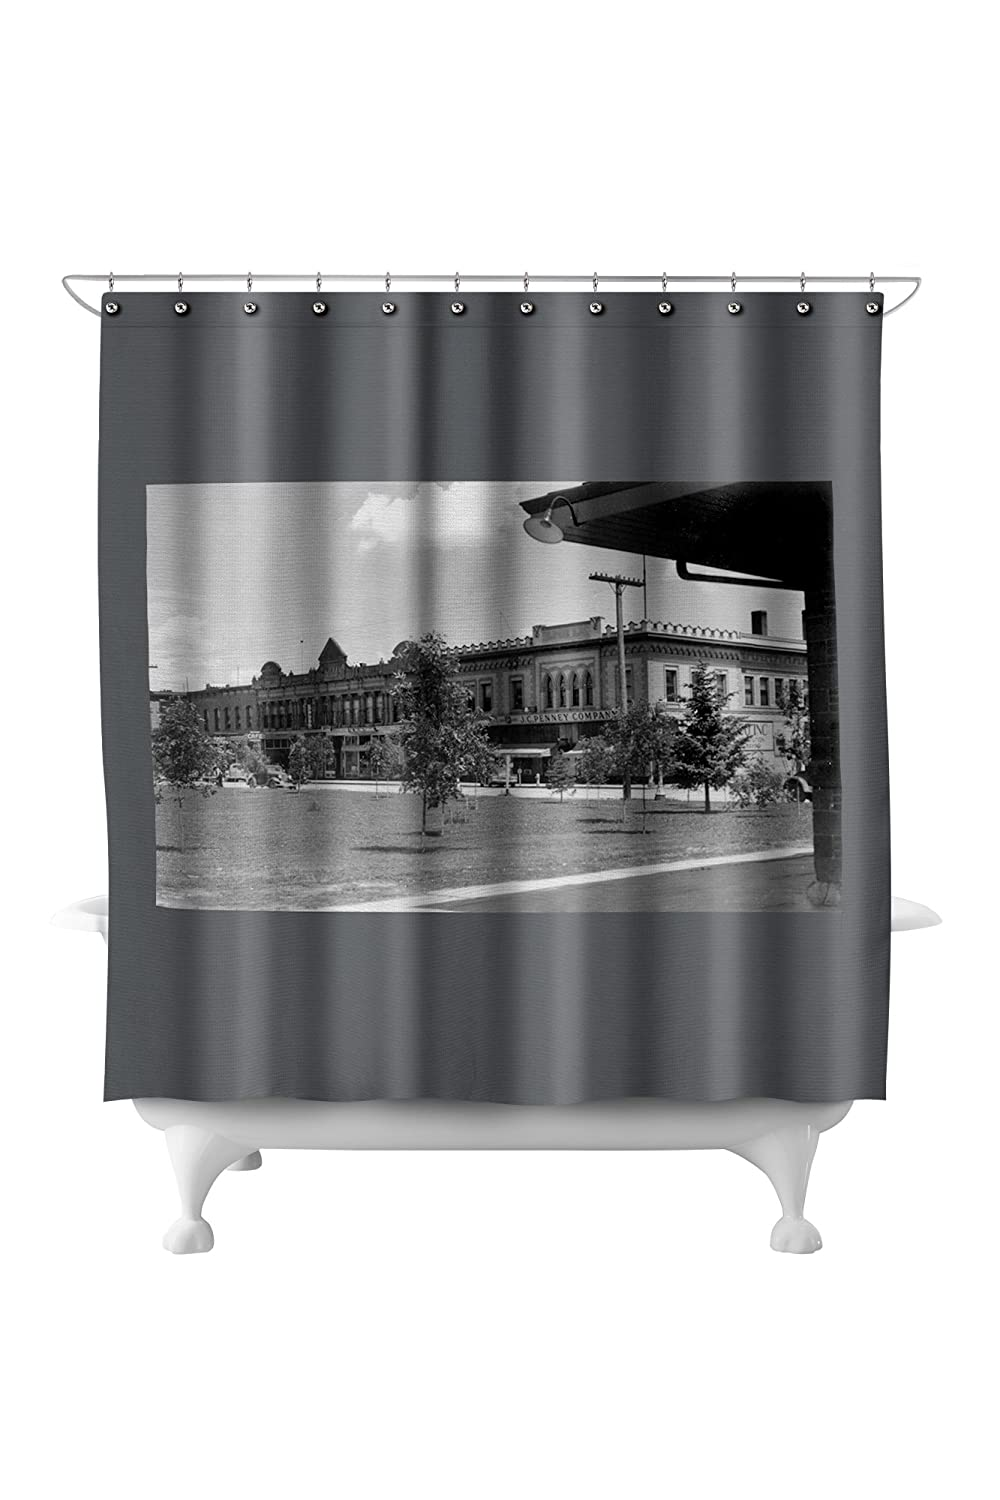 Dillion, Montana - Exterior View of the JC Penny Co (71x74 Polyester Shower Curtain)